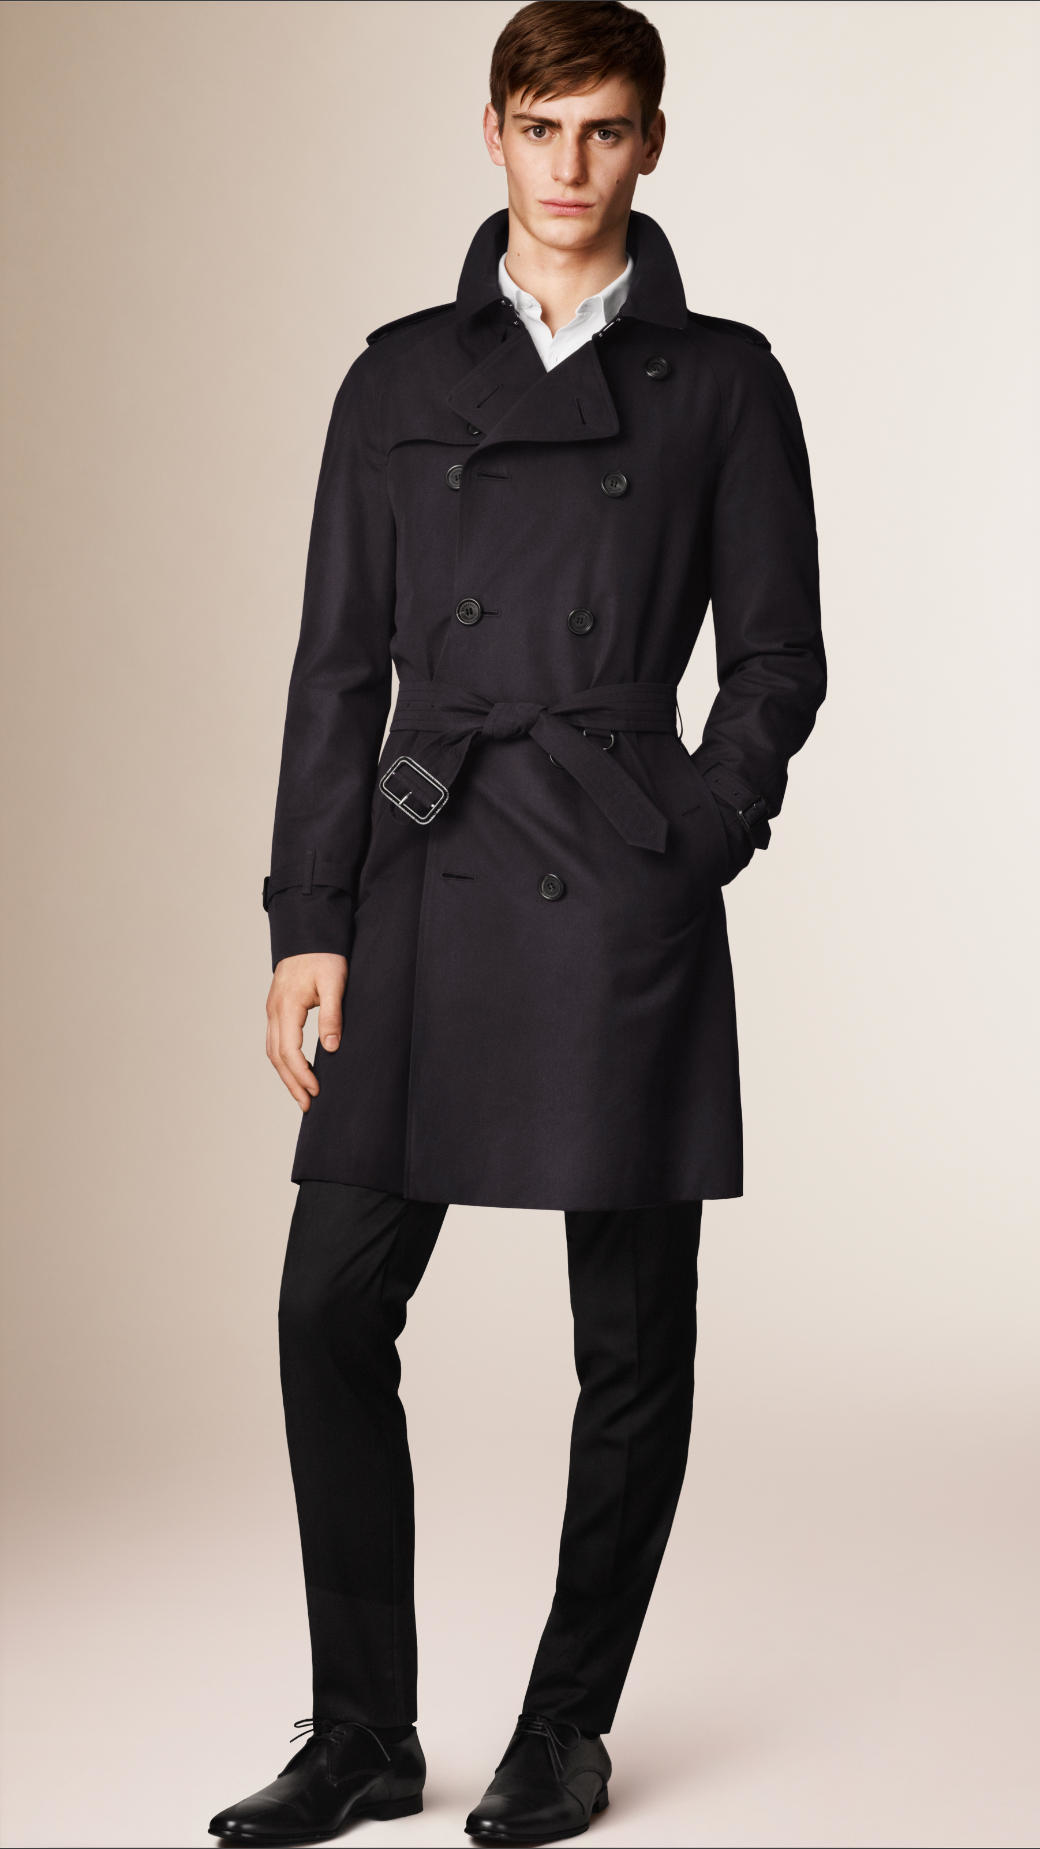 burberry the wiltshire long heritage trench coat in black for men lyst. Black Bedroom Furniture Sets. Home Design Ideas